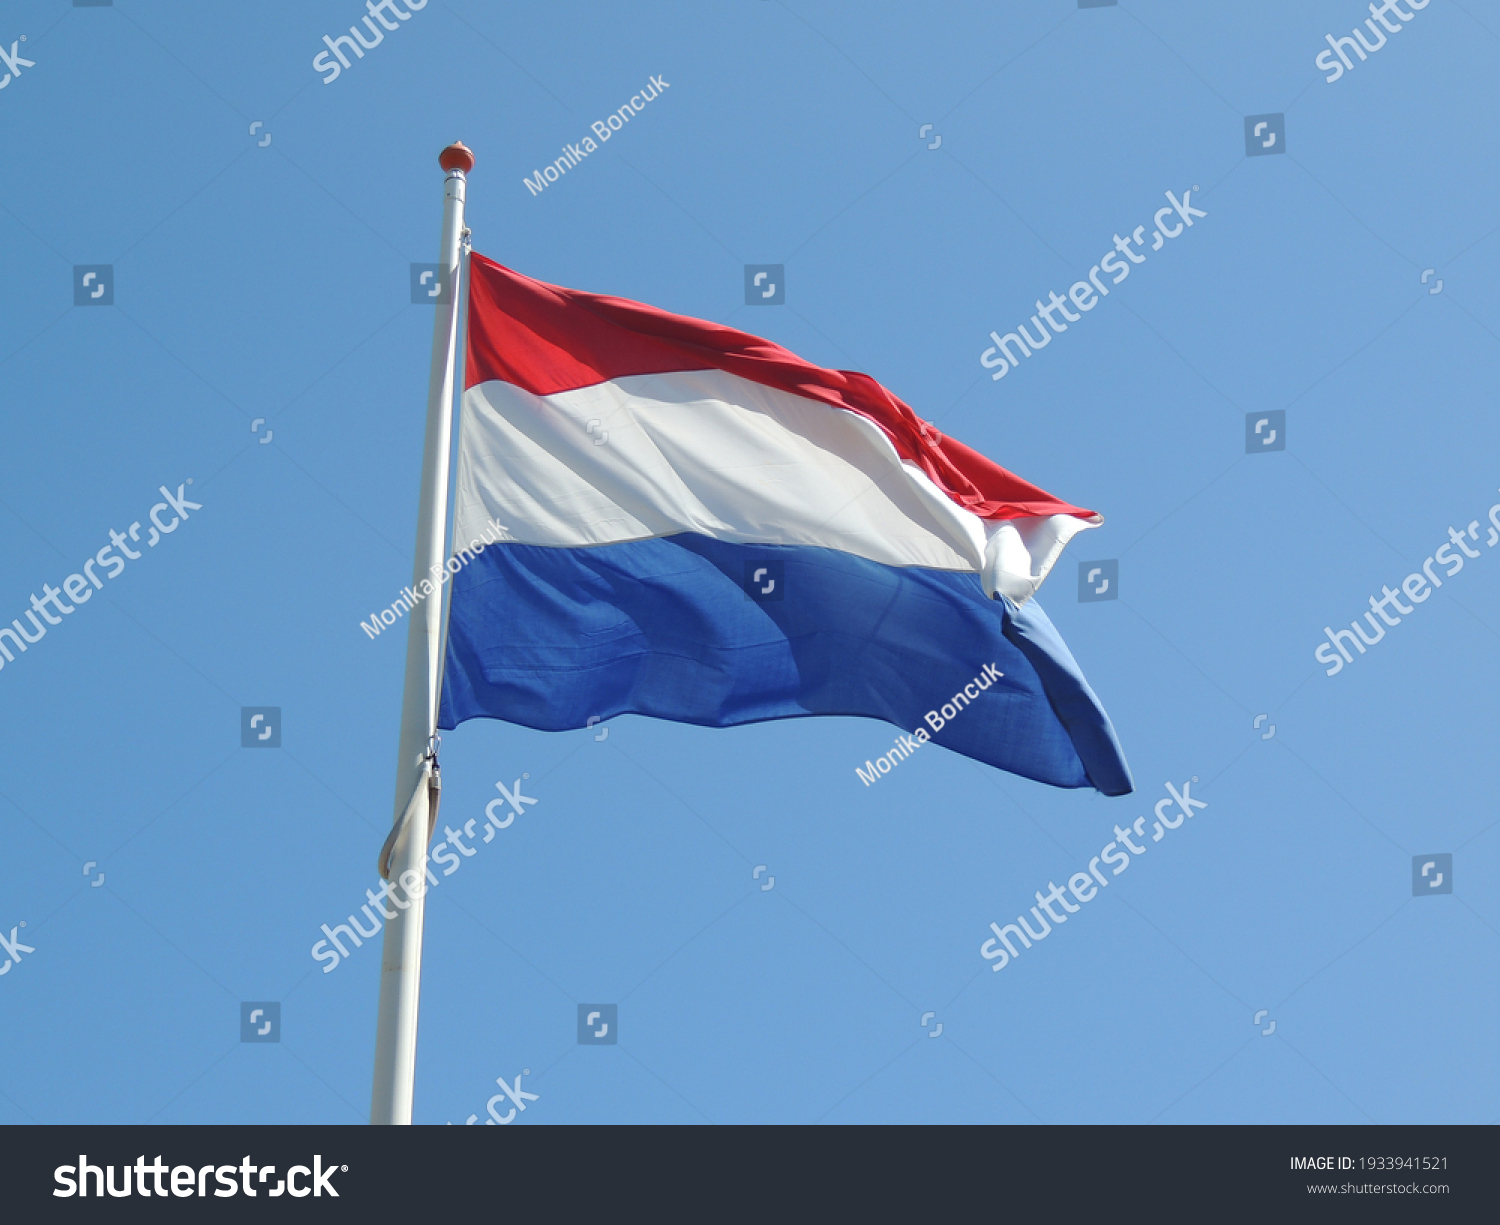 stock-photo-the-flag-of-netherlands-on-a